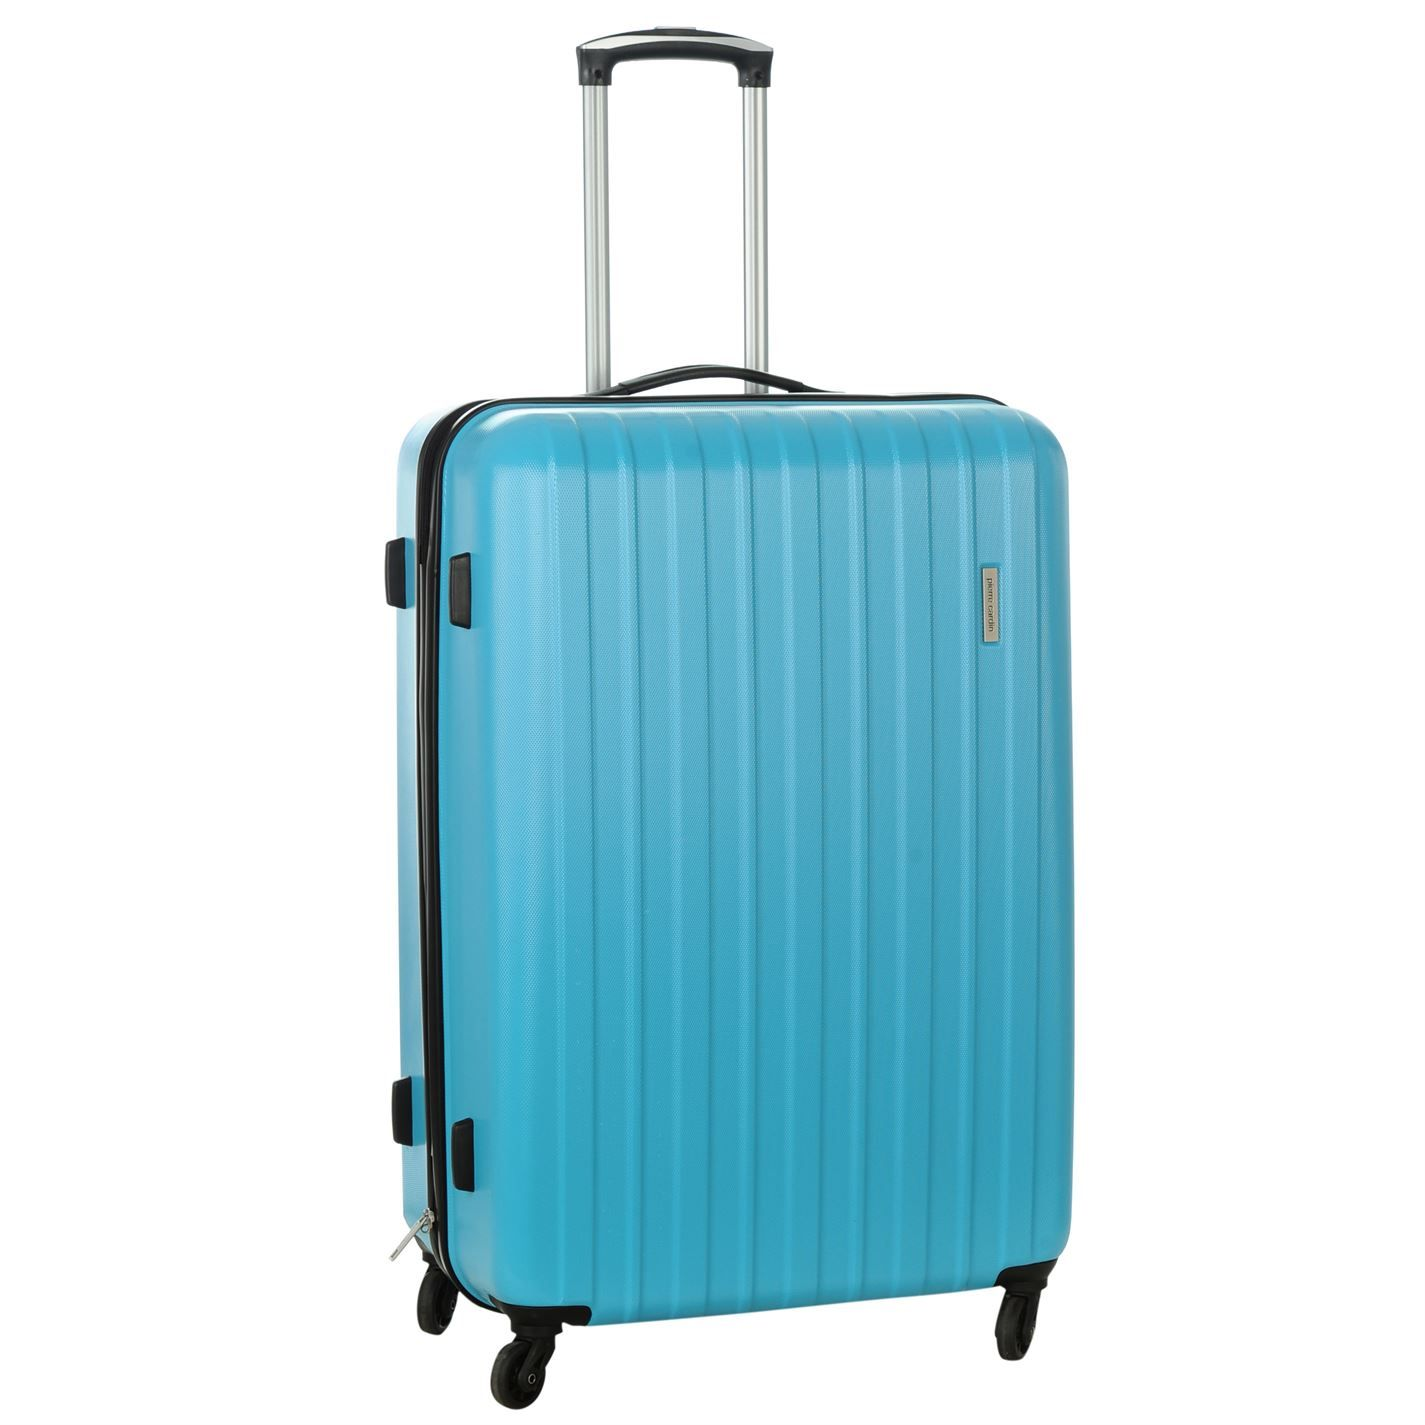 Pierre Cardin | Pierre Cardin Axis Suitcase | Luggage and ...